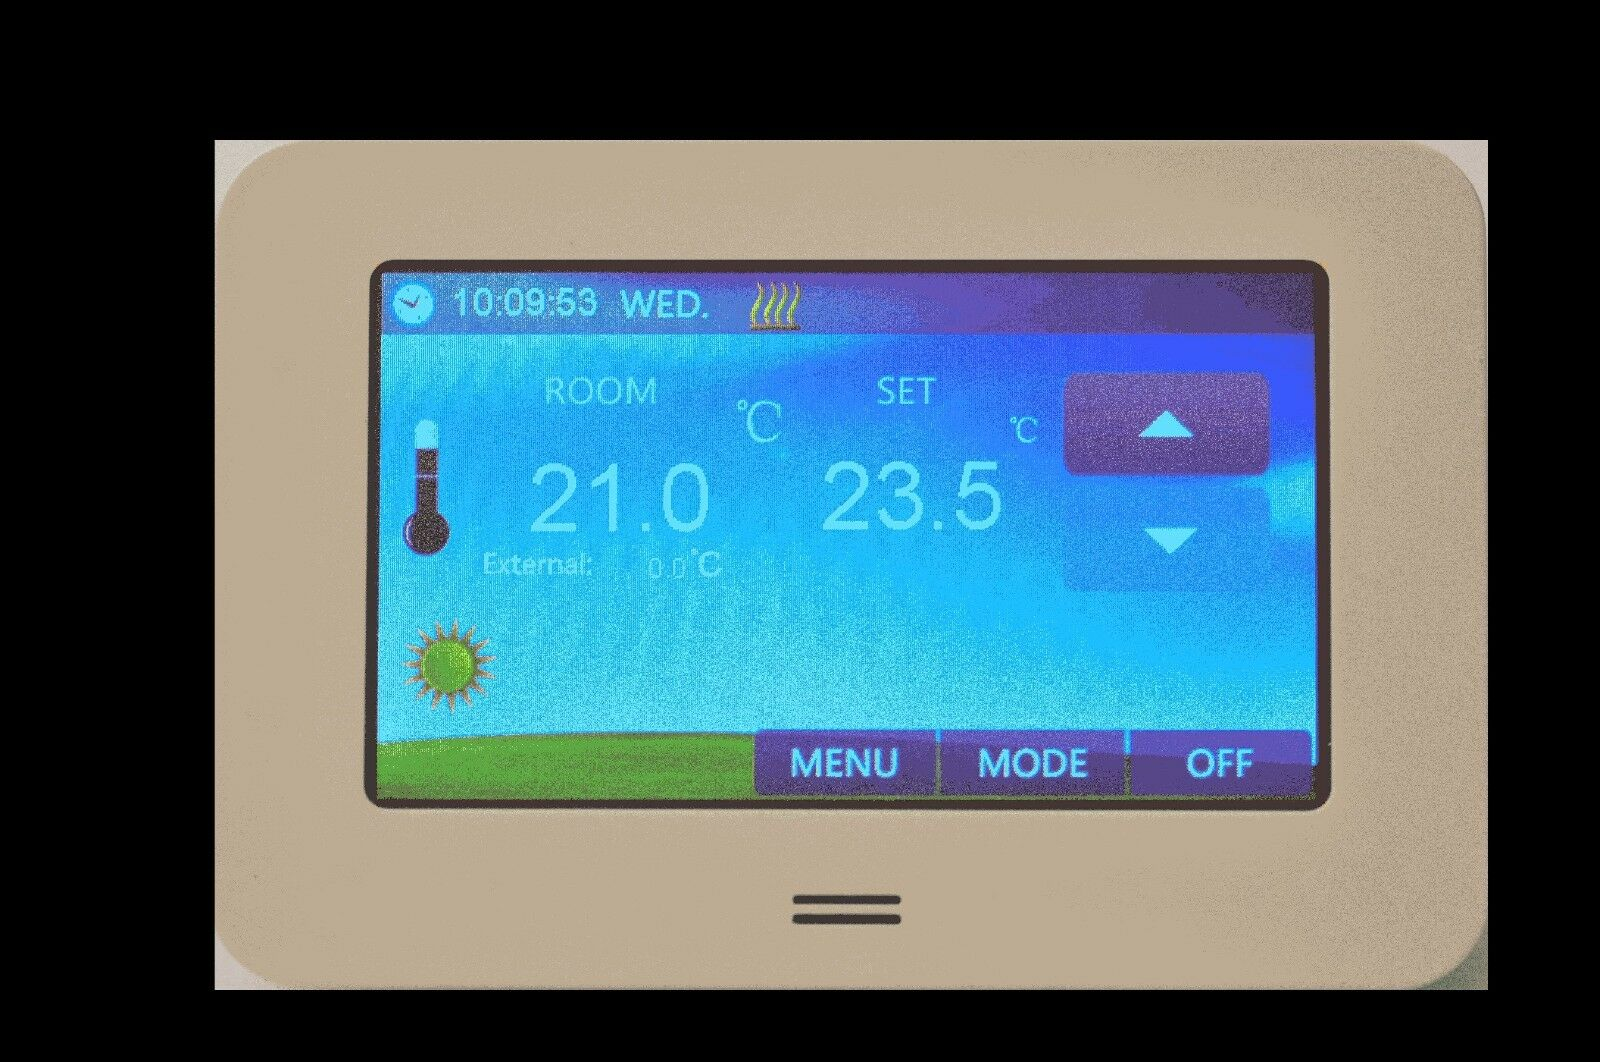 digital raumthermostat lcd color touchscreen 4 3 inch fu bodenheizung cts white. Black Bedroom Furniture Sets. Home Design Ideas